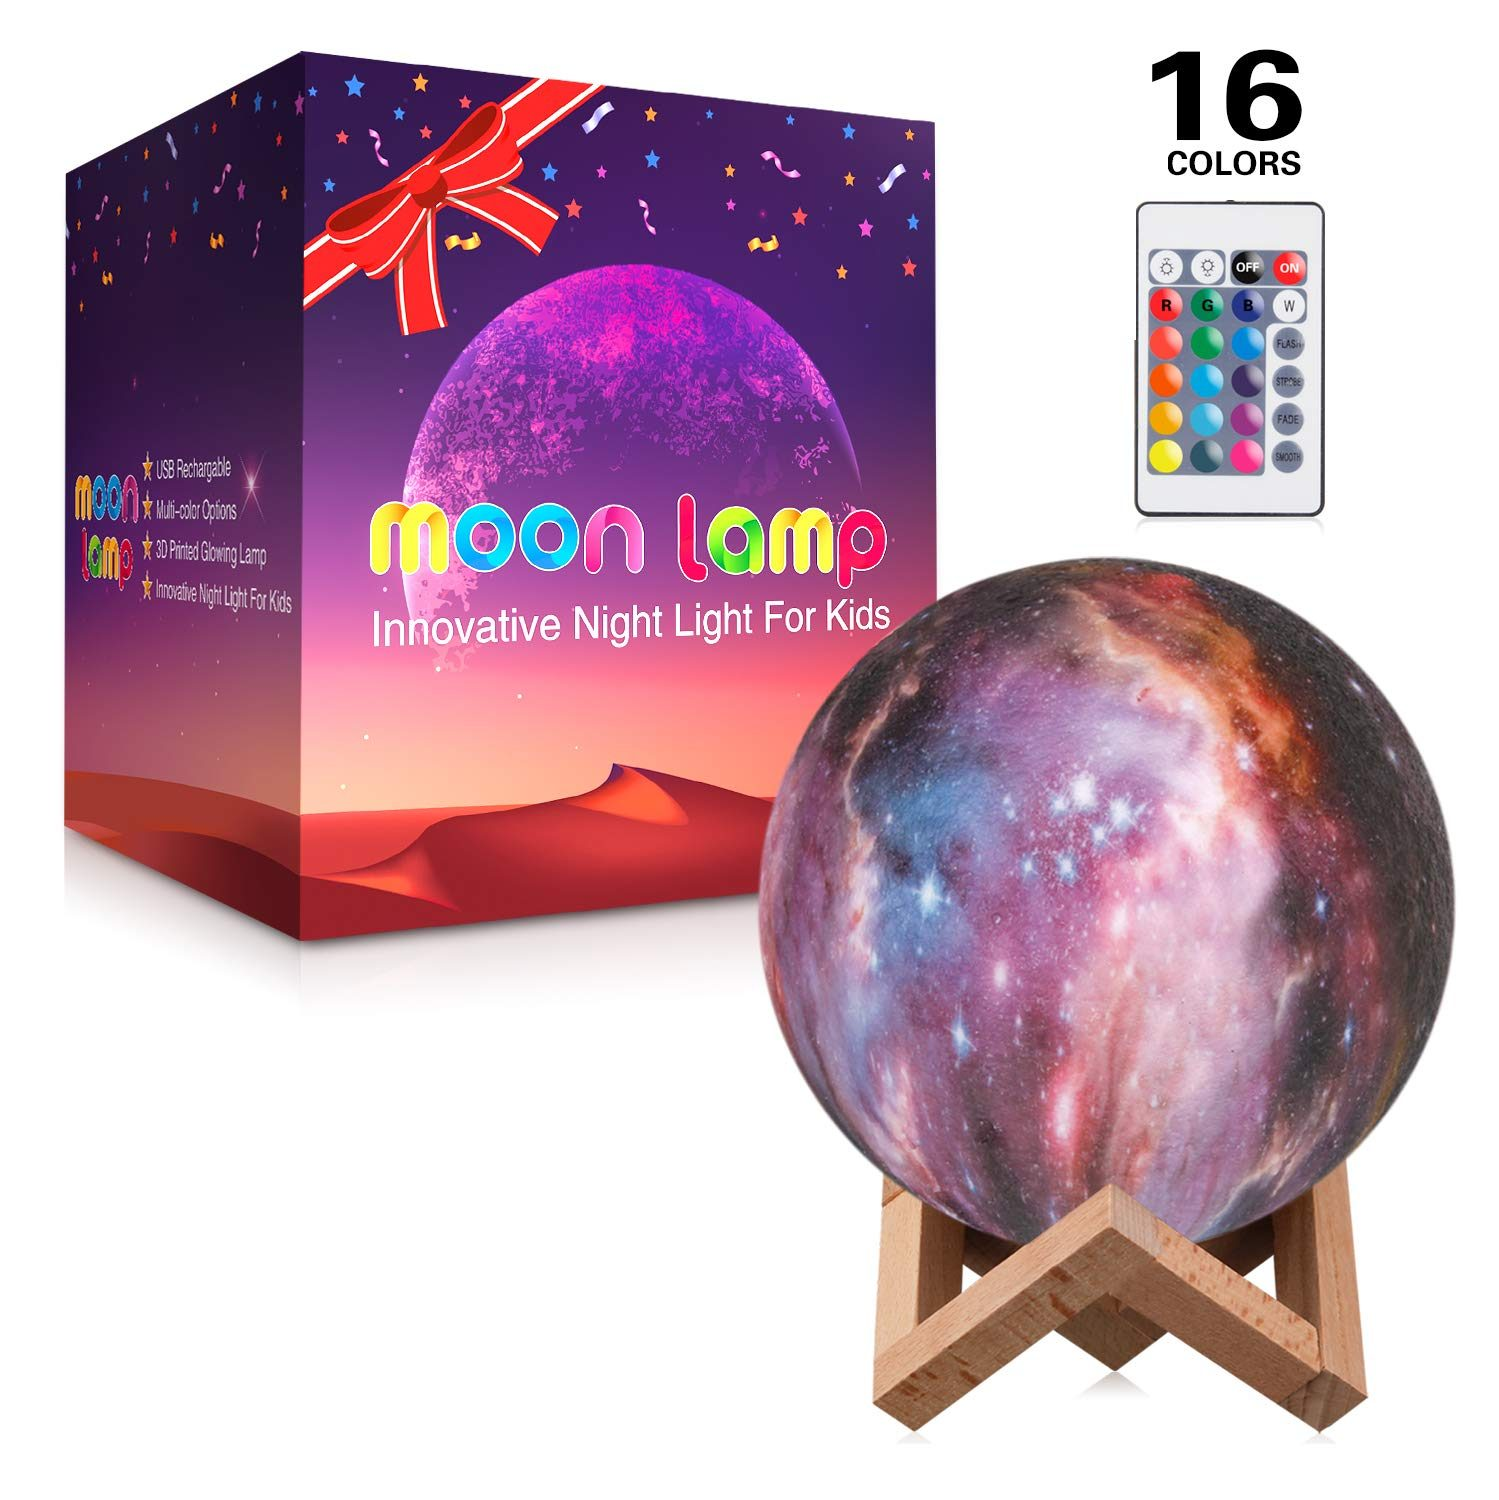 5.9 inch Purple Moon Lamp Friend Birthday Party Gifts 3D Printed 16 Colors LED Moon Light Lamp with Stand /& Remote /& Touch Control /& USB Rechargeable Decorative Glowing Moon Night Light for Kids